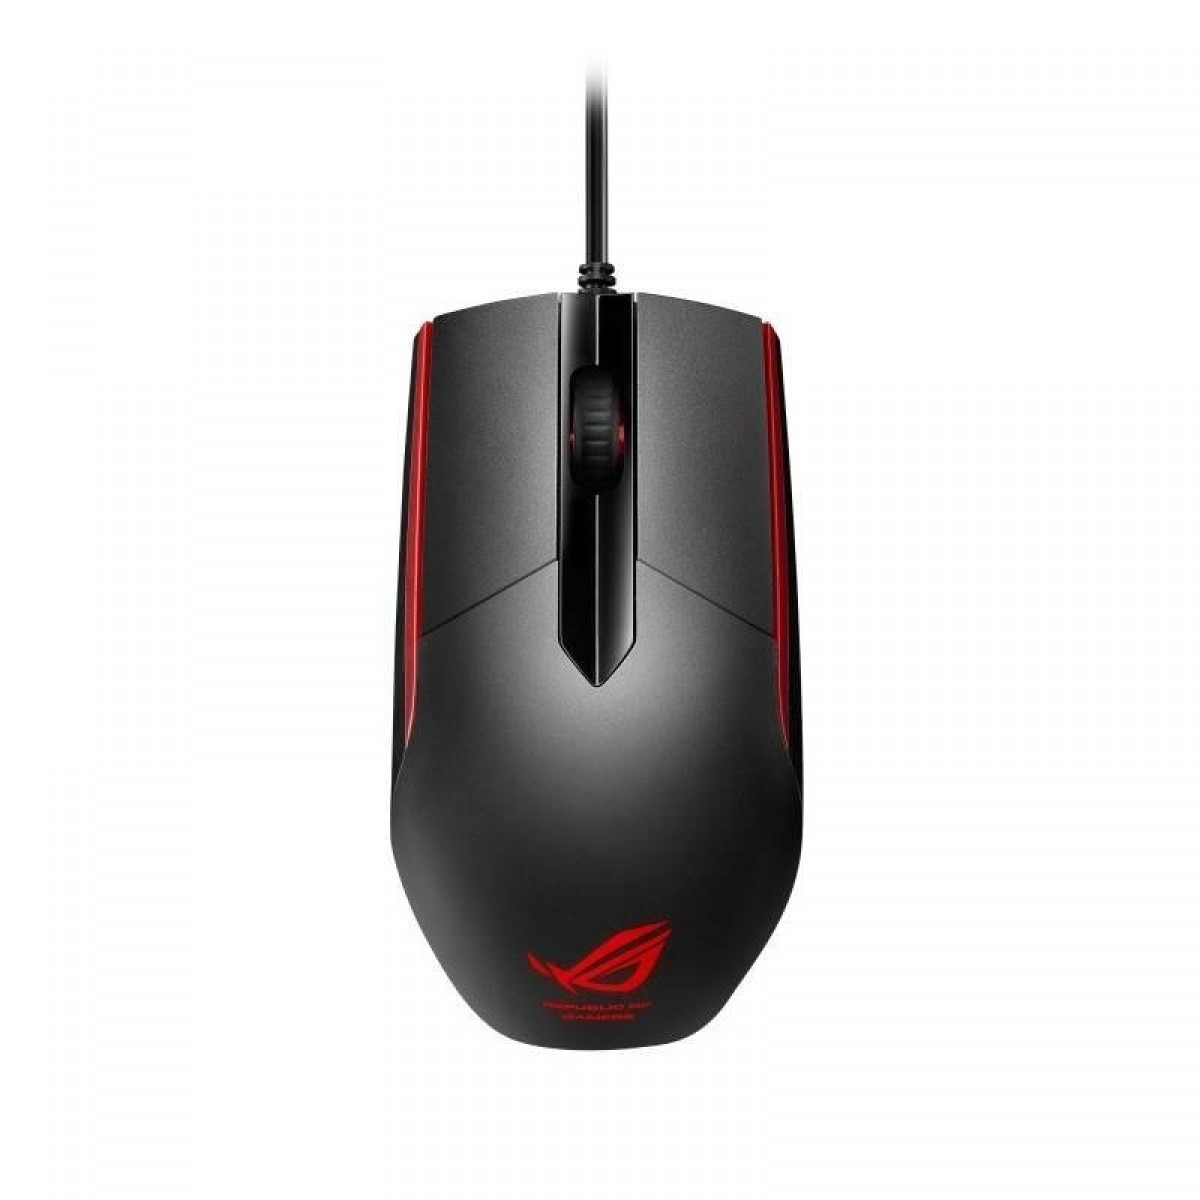 Mouse Gamer Asus Rog Sica P301, 3 botôes, 5000 DPI Black, 90MP00B1-B0UA00